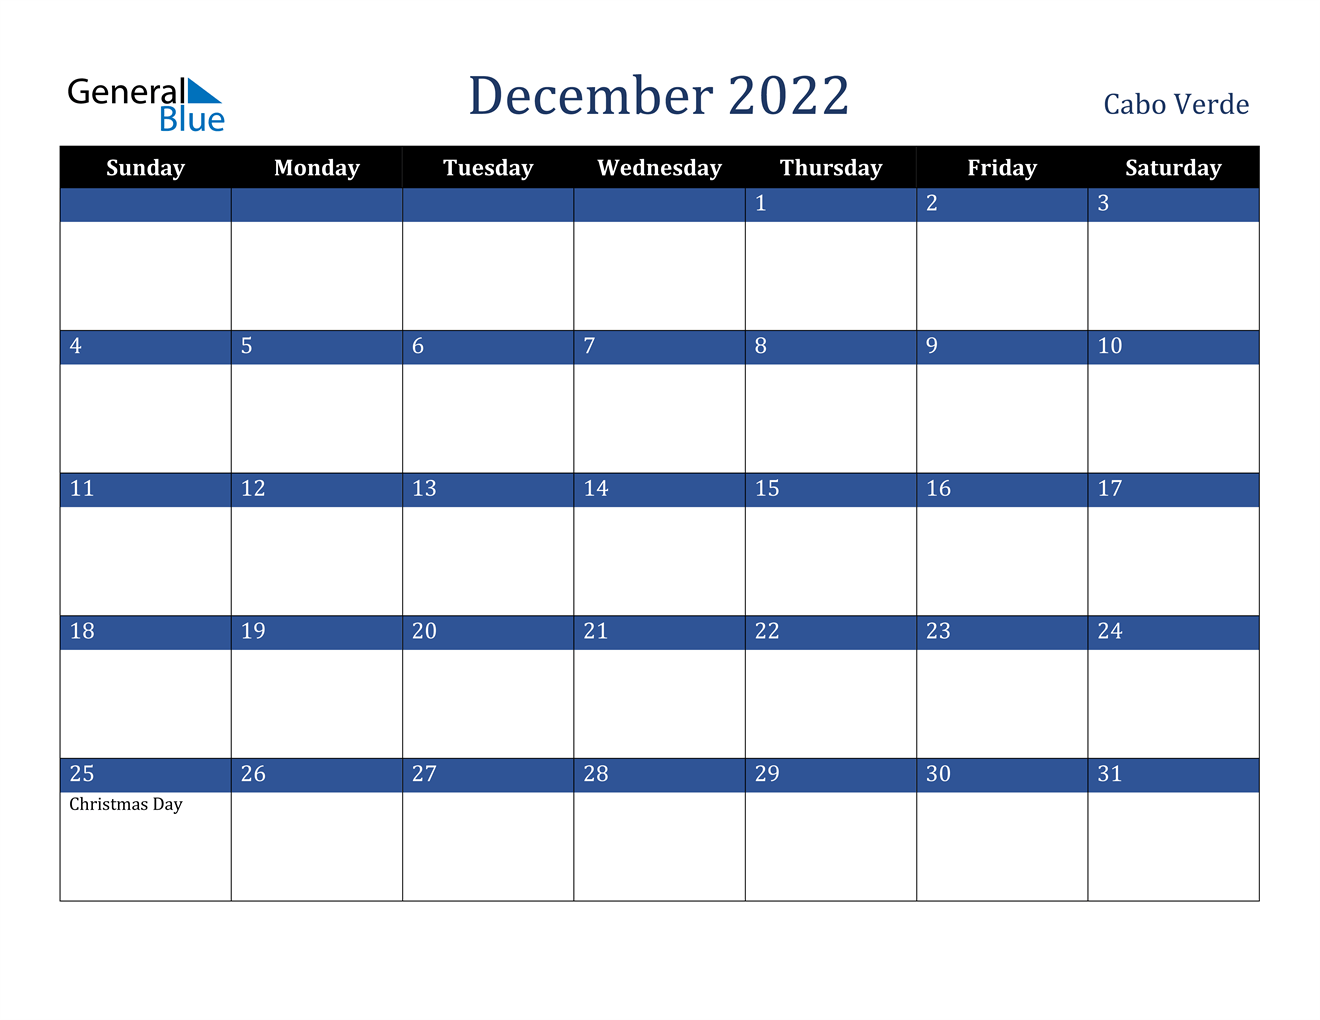 This december 2022 calendar can be printed on an a4 size paper. December 2022 Calendar - Cabo Verde